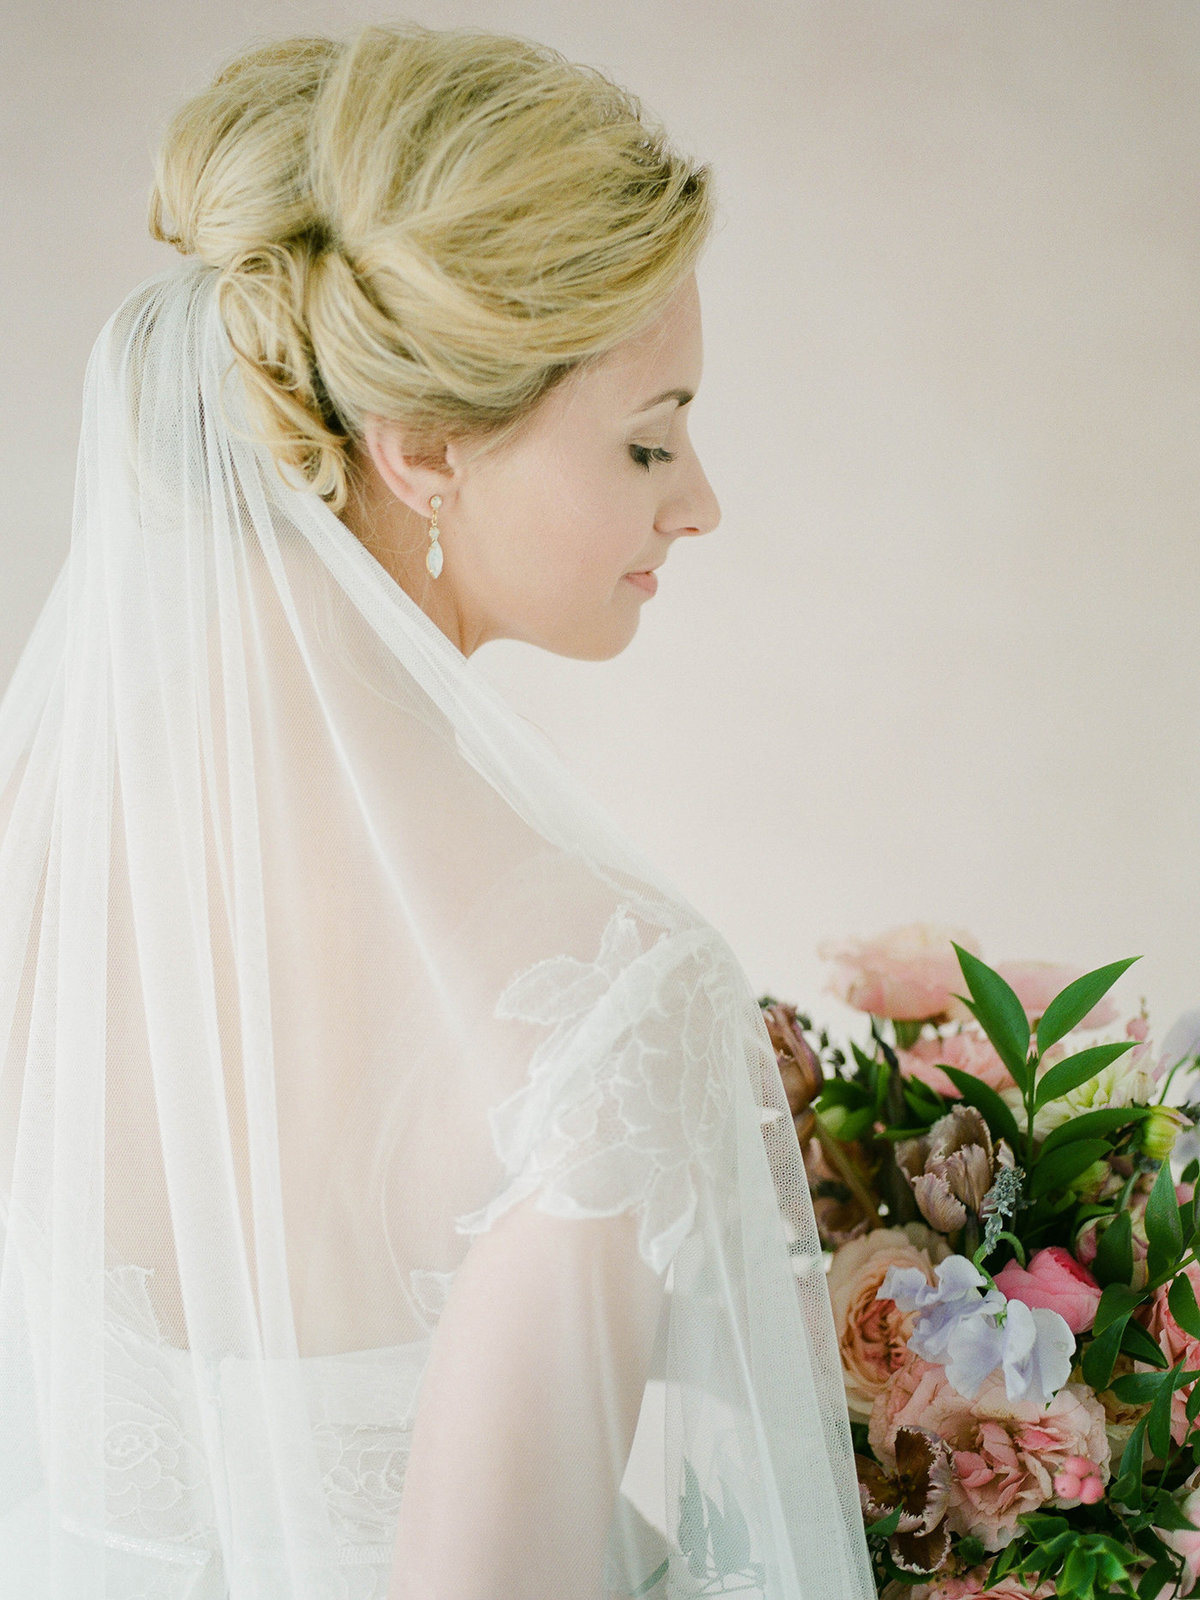 Fine Art Bridal Portraits - Sarah Sunstrom Photography - Film Wedding Photographer - 32